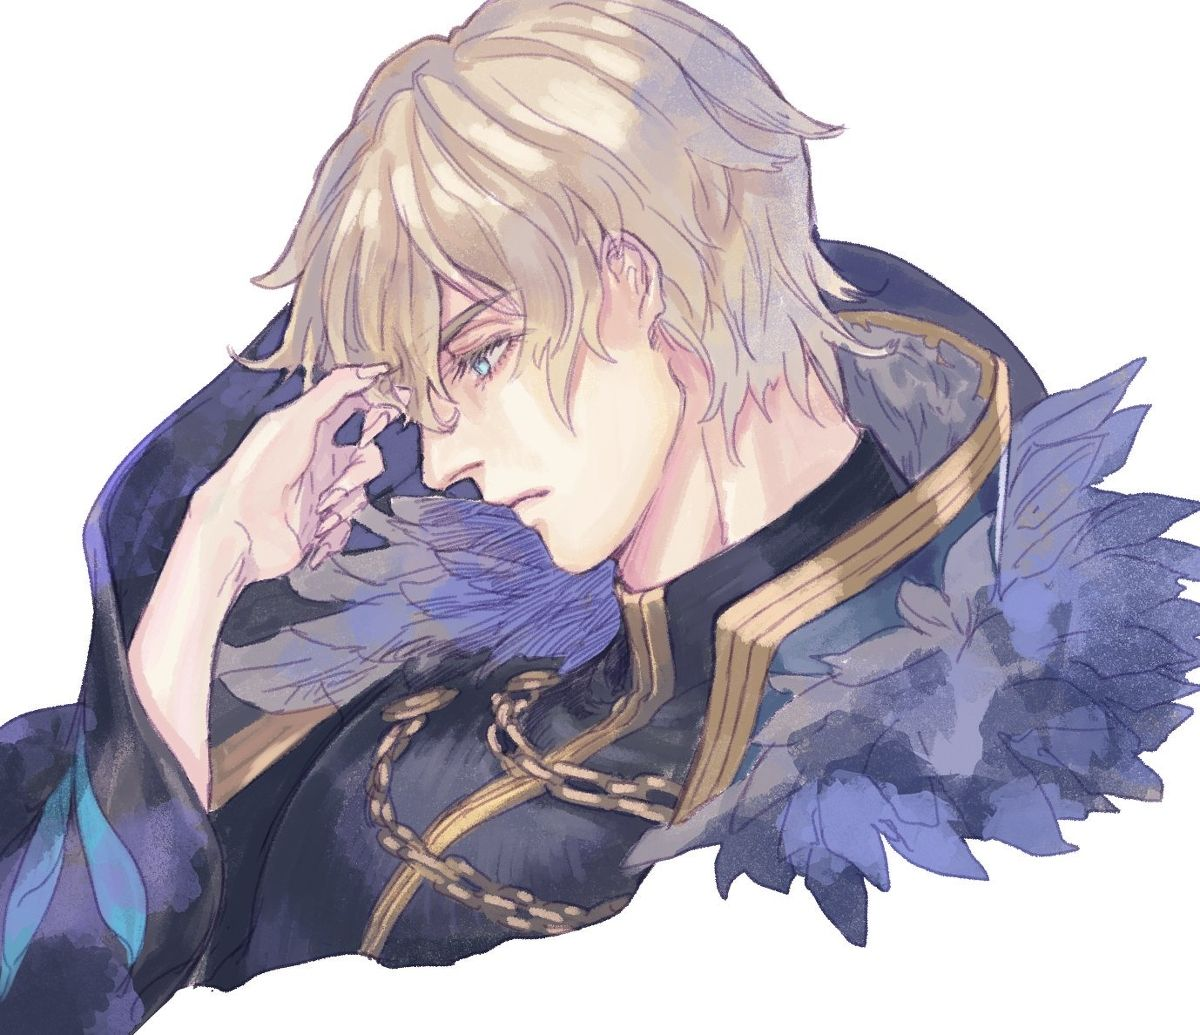 Gawain【Fate/Grand Order】 Anime artwork, Fate anime